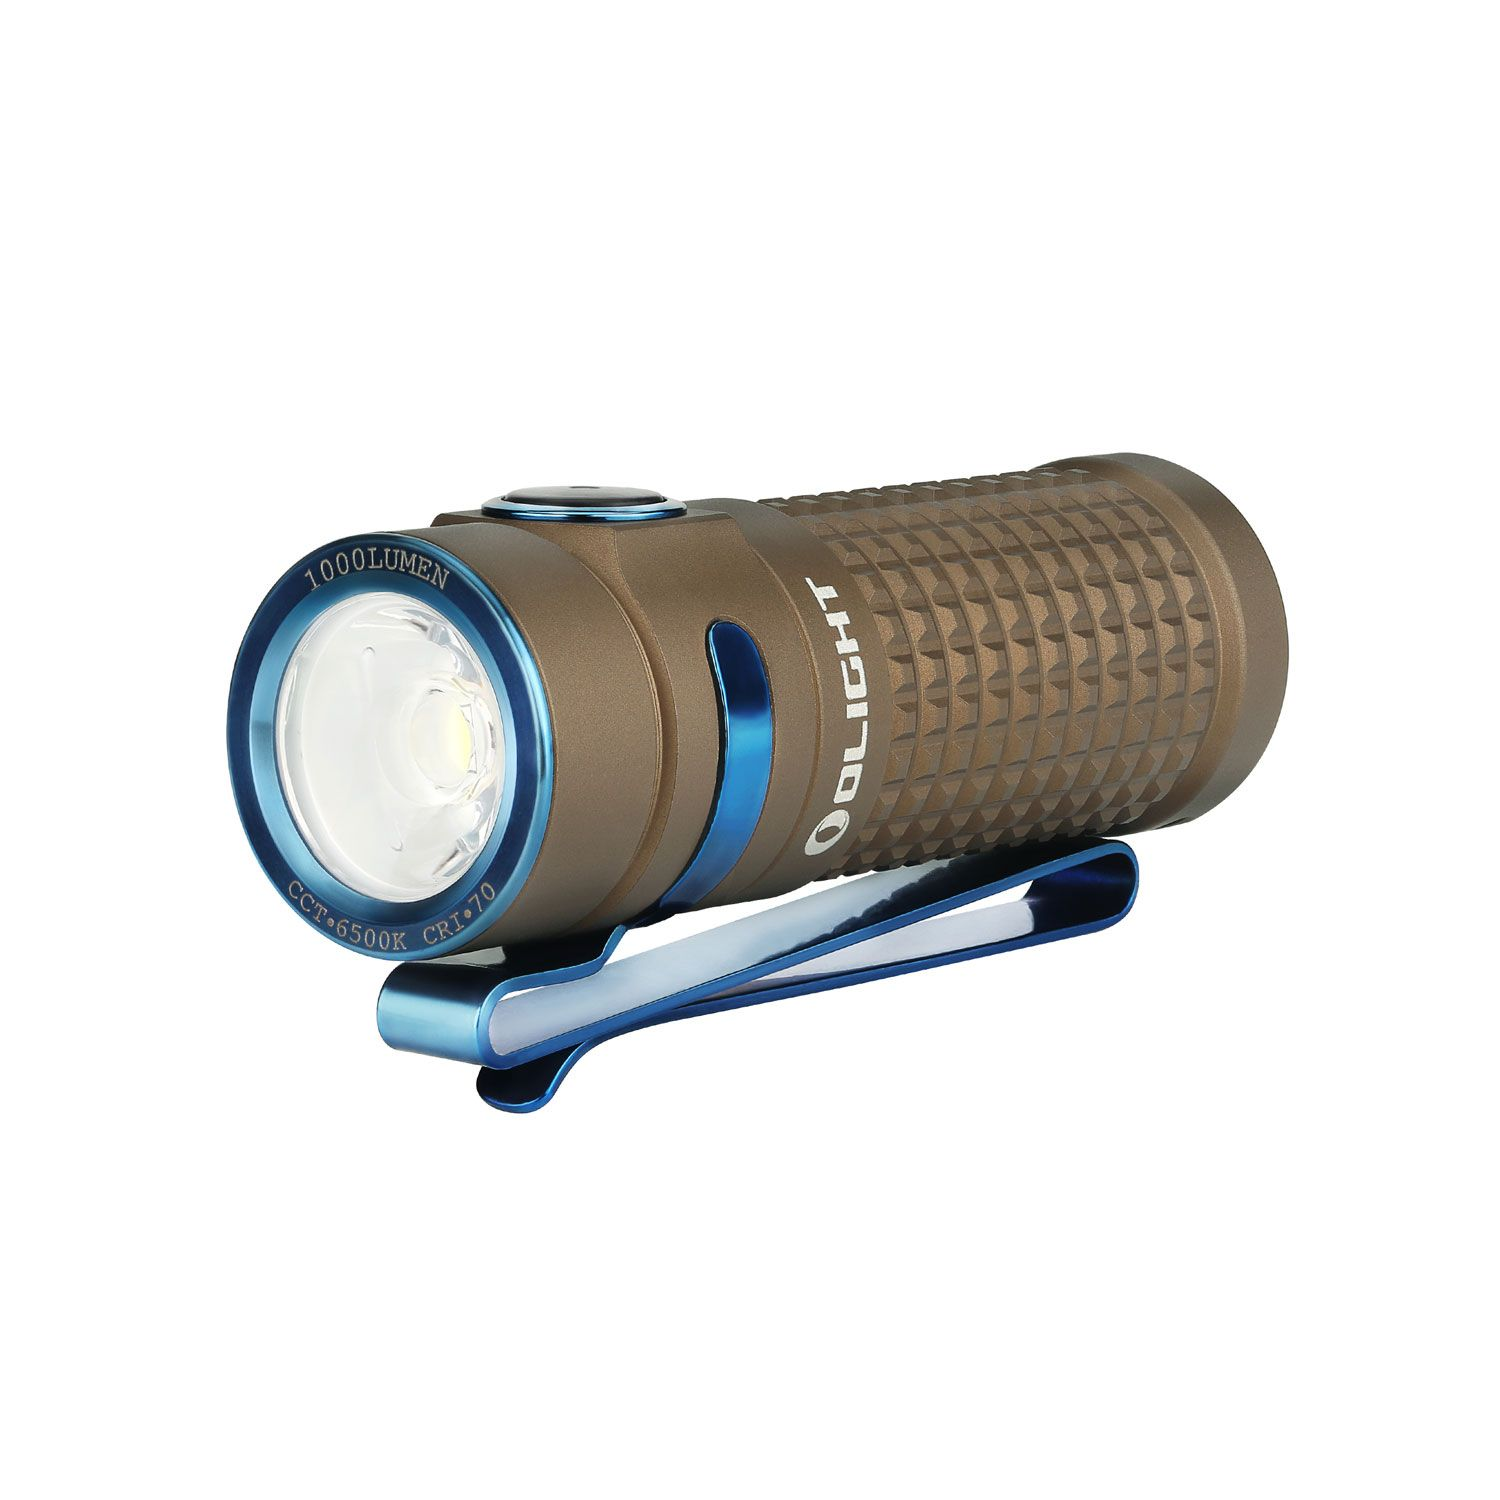 OLIGHT-S1R-Baton-II-Desert-Tan-Flashlight